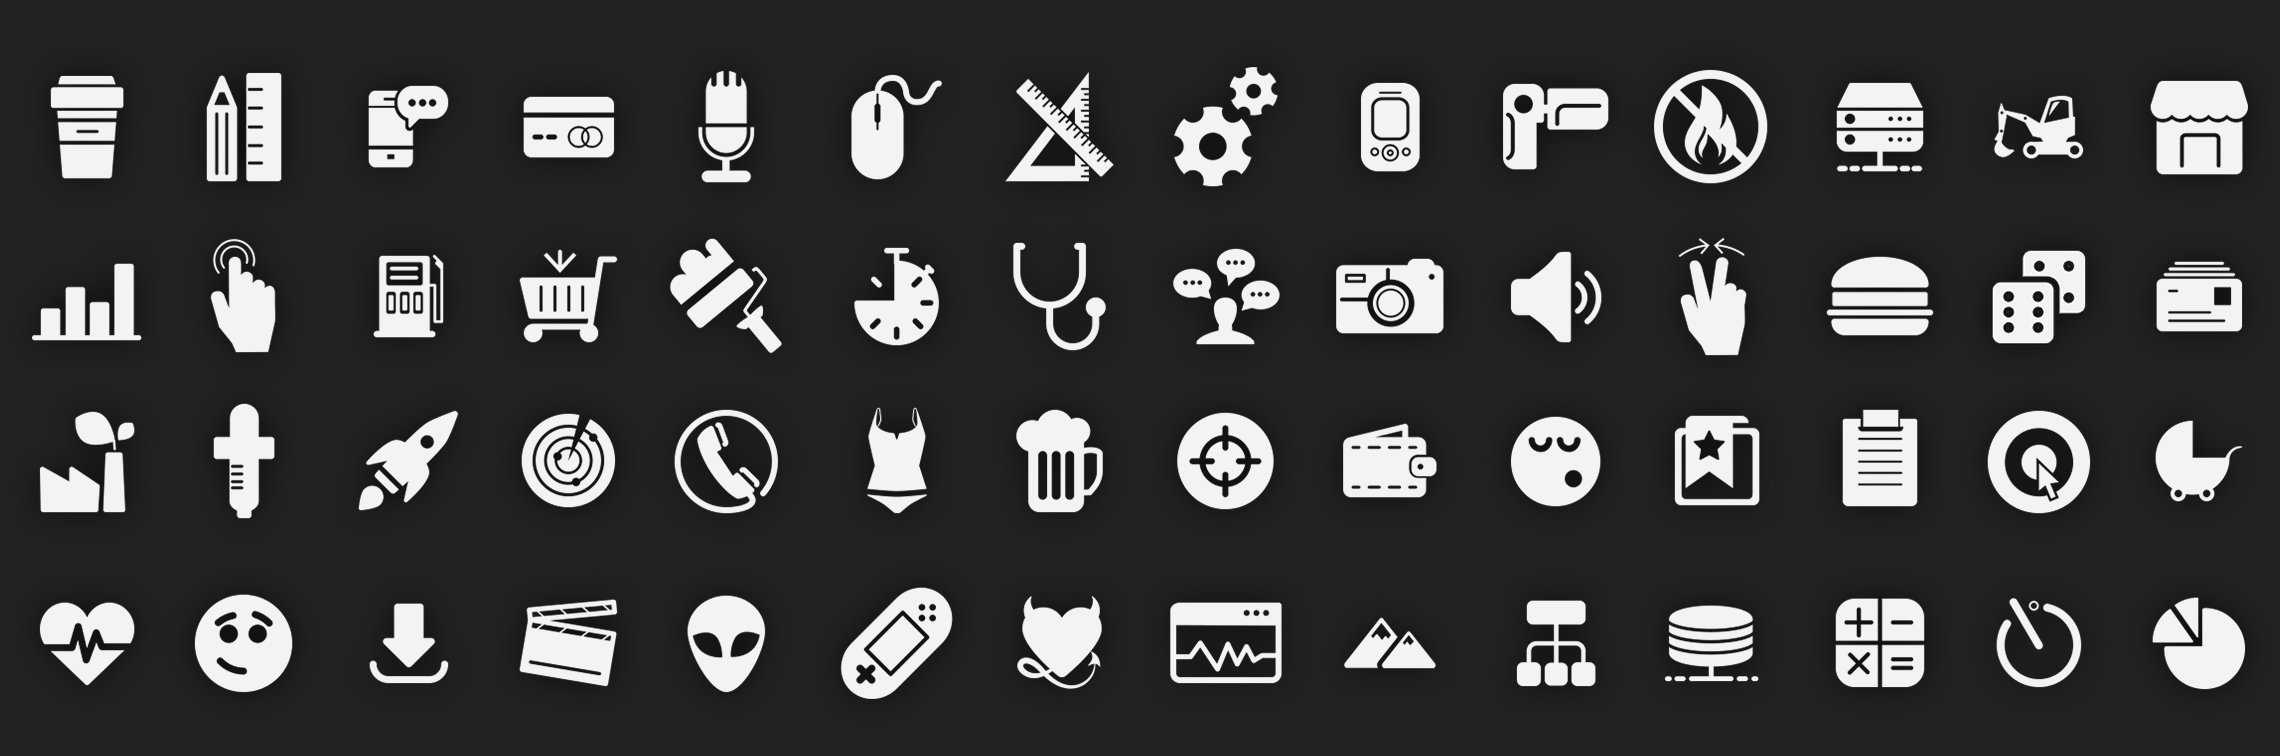 Glyph Icons Set Vector